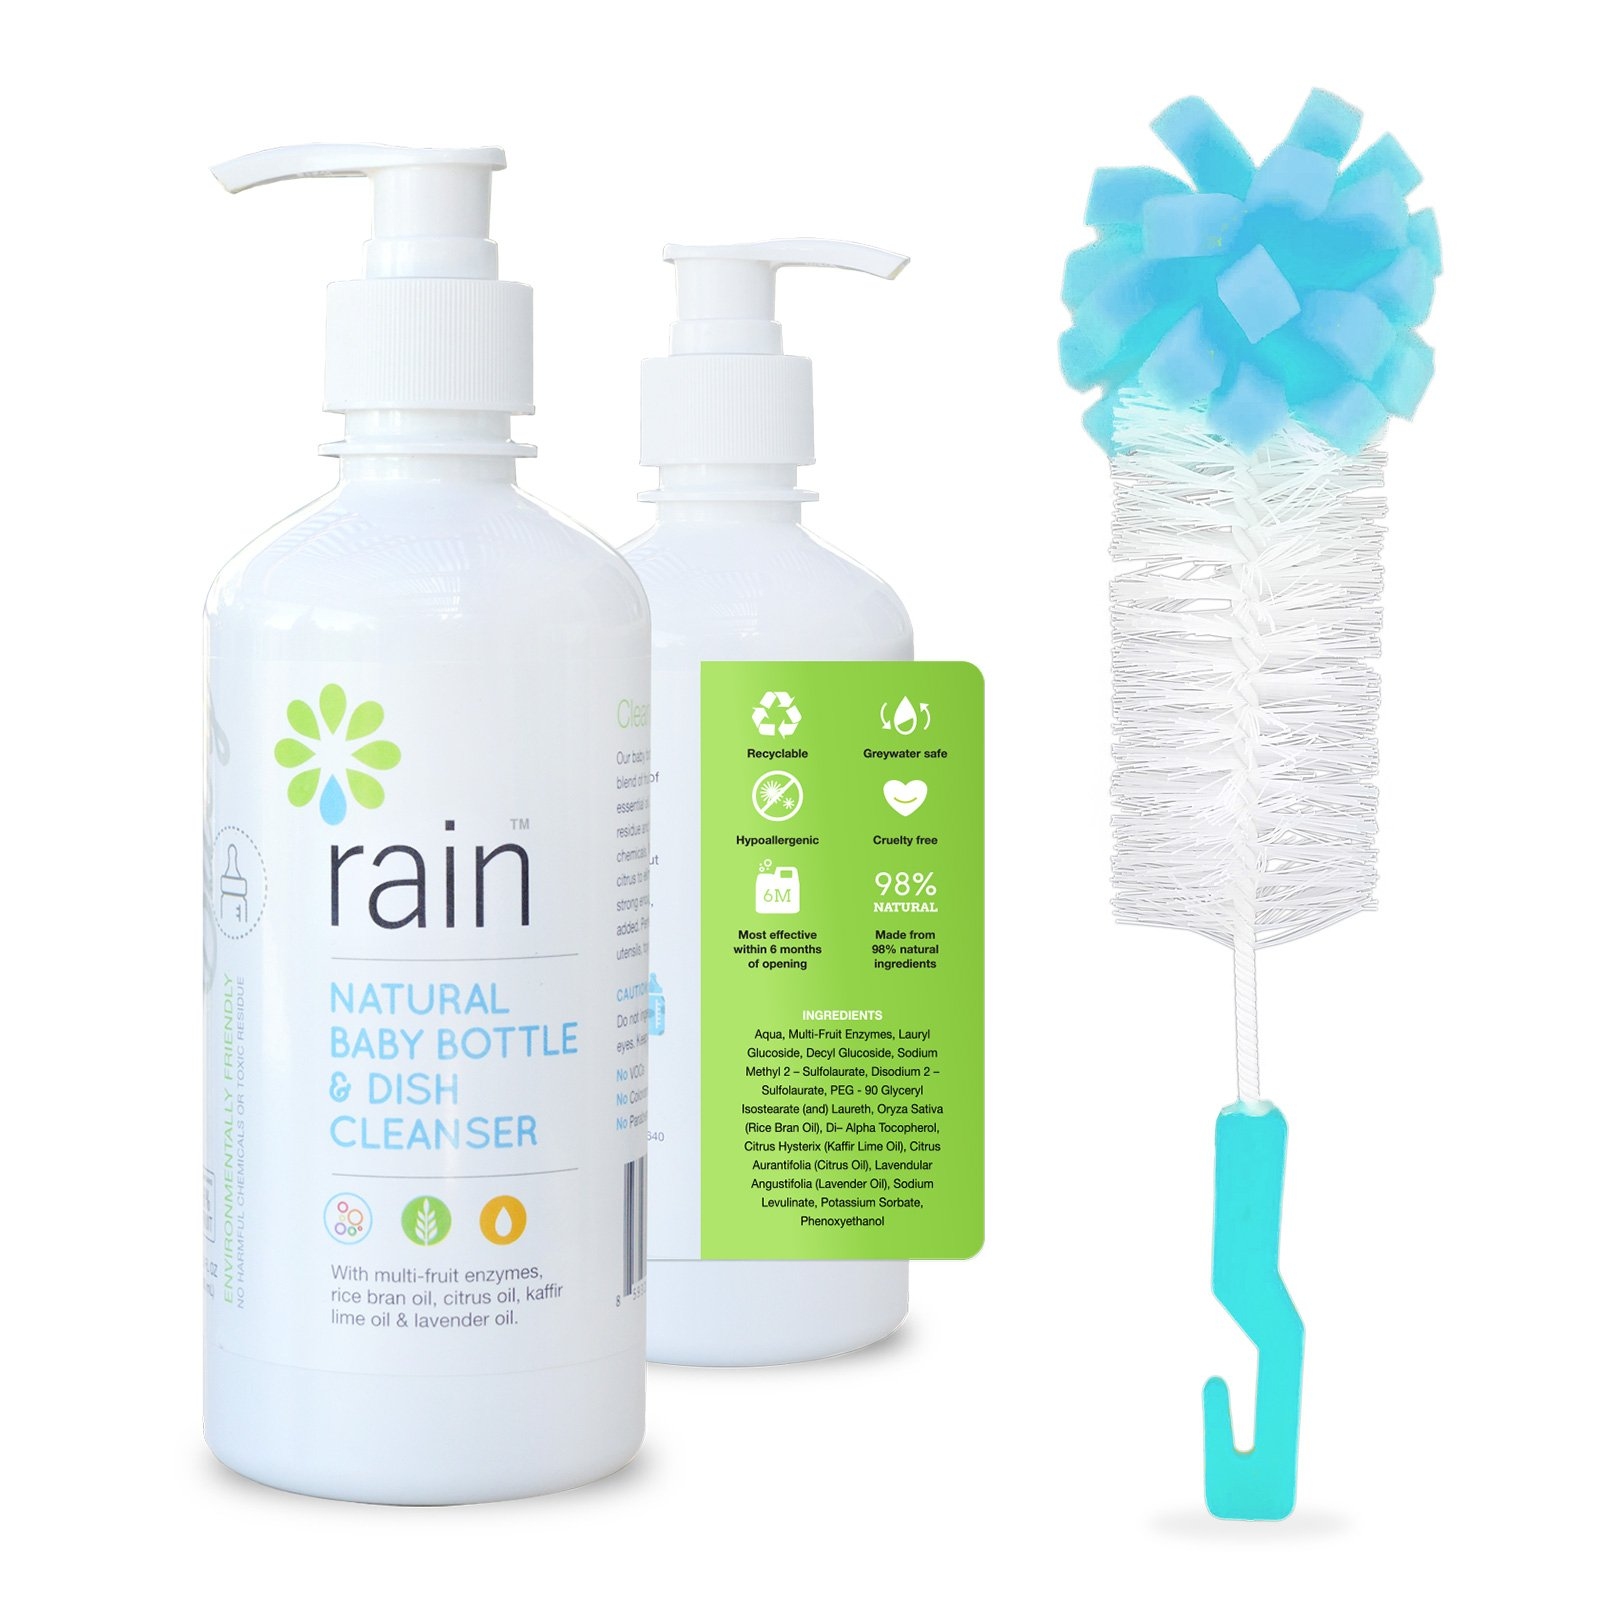 Rain Natural Baby Bottle and Dish Cleanser (13.5 oz.) Fruit & Plant-Based Soap Wash and Cleaner | Utensils, Dishware, Toys, Pacifiers, Accessories | Moisturizing Skincare (With Brush)